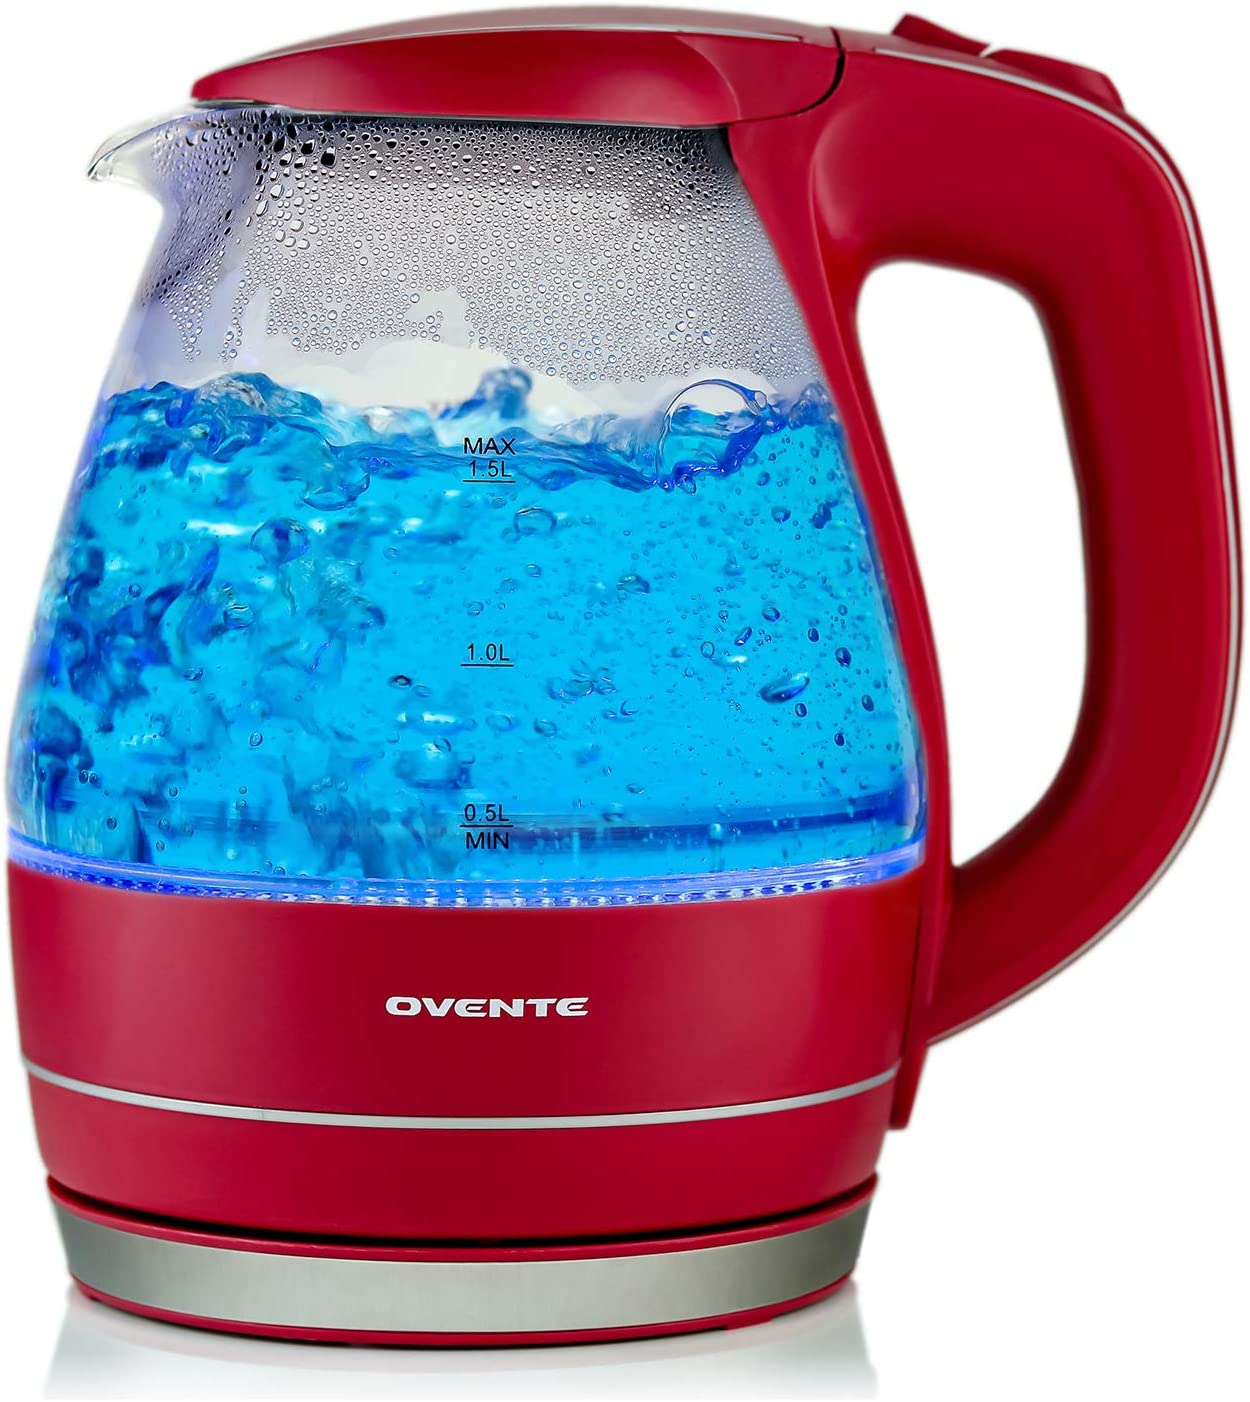 Ovente 1.5L BPA-Free Glass Electric Kettle, Fast Heating with Auto Shut-Off and Boil-Dry Protection, Cordless, LED Light Indicator, Maroon (KG83M)